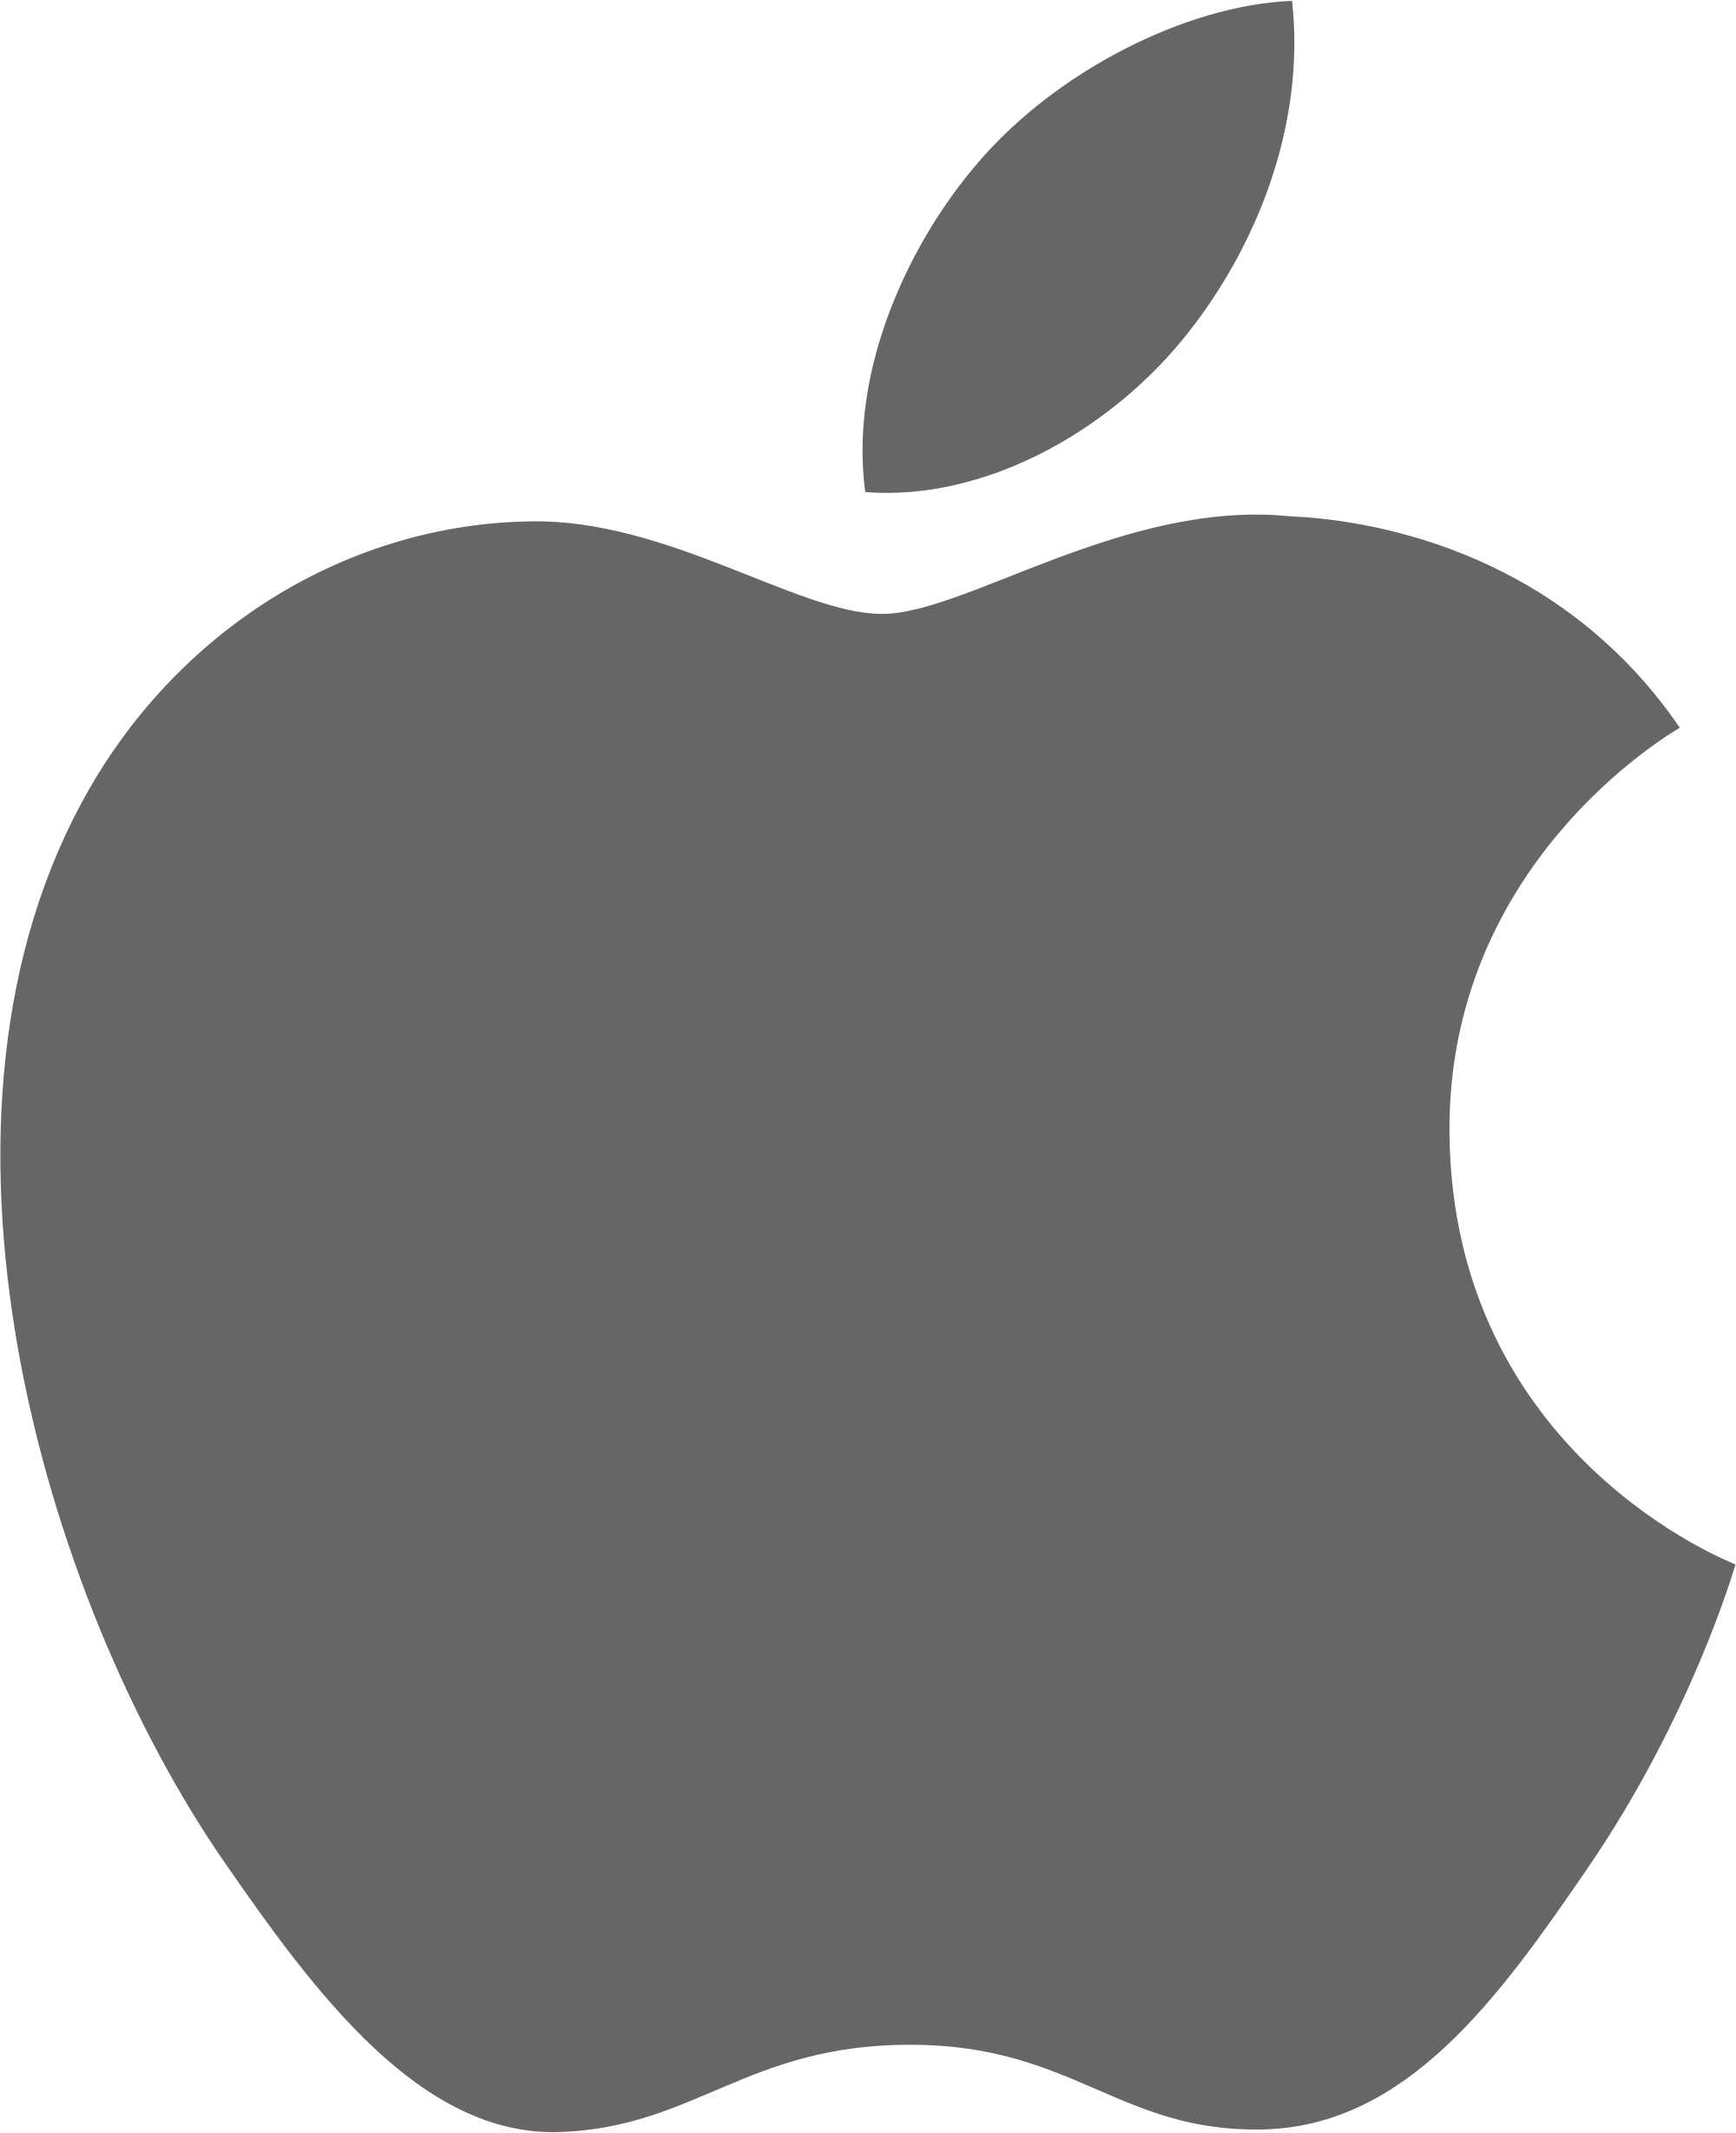 Apple log png. File logo dark grey